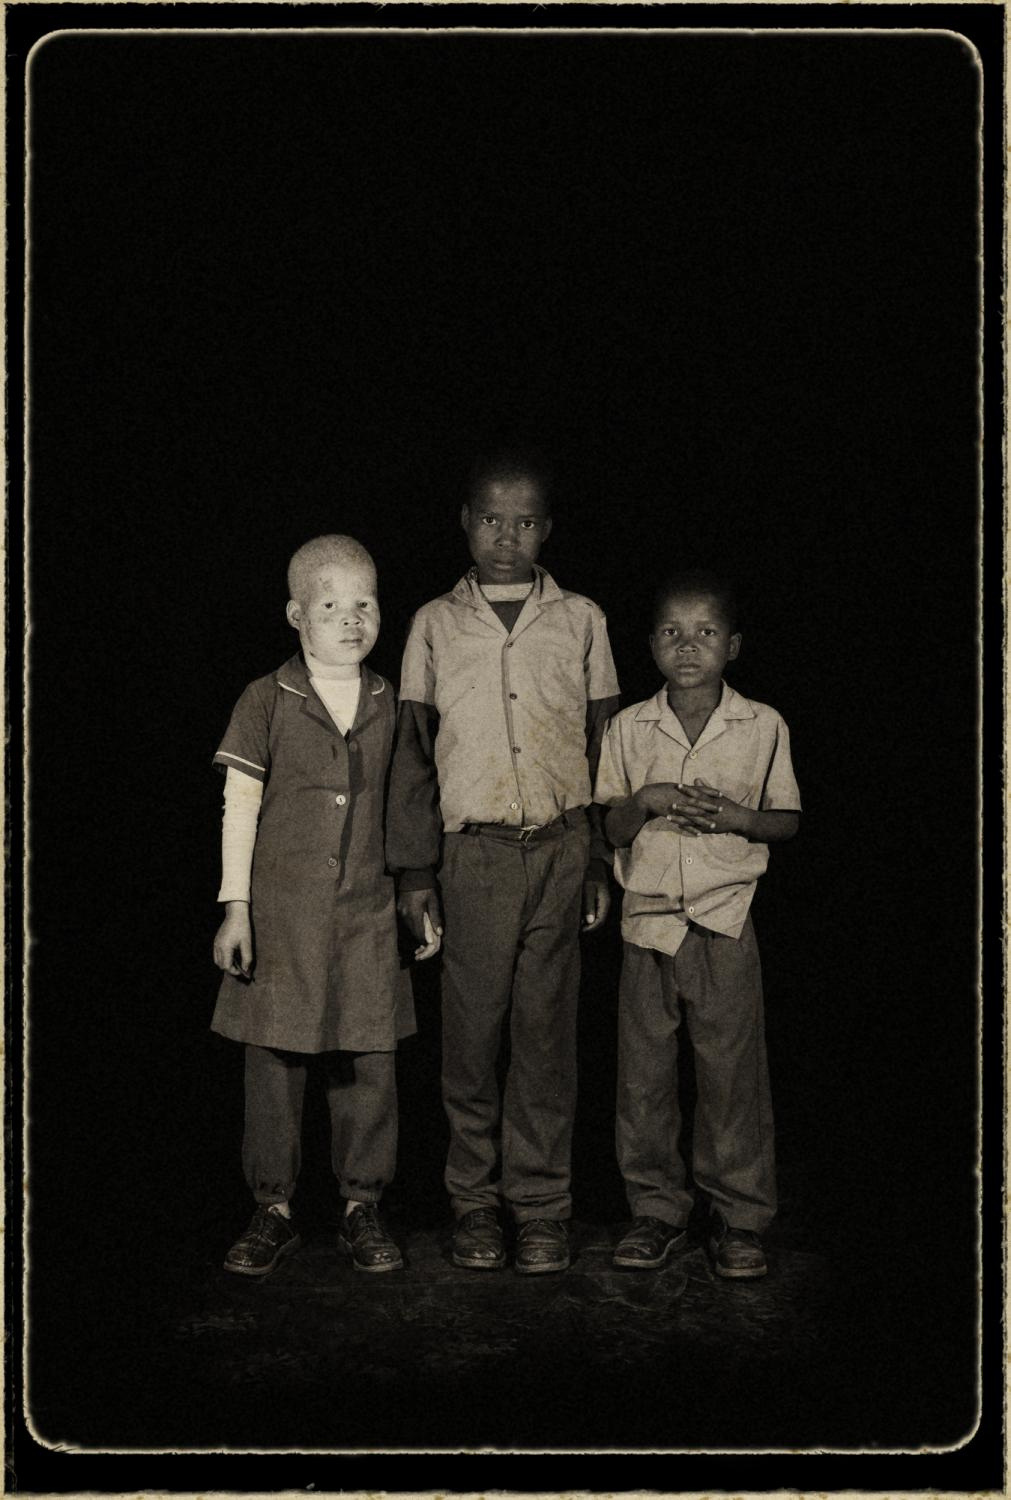 Hosea, Swaziland. ¨Orphans¨ Portrait of orphaned Lwanaile 12 years old, with her sister nonzobeko, 10 years old (albino), and Baneze, 8 years old, they live with their mother, their father already died. The HIV/AIDS pandemic has affected almost every family in the Kingdom of Swaziland. The Country has the highest percentage of HIV-positive people in the world, with nearly 36% of those between the ages of 15 and 49 living with HIV. Of extreme concern is the issue of orphans in a Country of just more than one million people an estimated 220,000 people are living with HIV. More than 70,000 children have been orphaned by AIDS. According to UNADIS, the number of orphans will continue to grow at an alarming rate with a projection of 120,000 orphans in the Country by 2010. (UNAIDS: 2006 Report on the global AIDS epidemic).